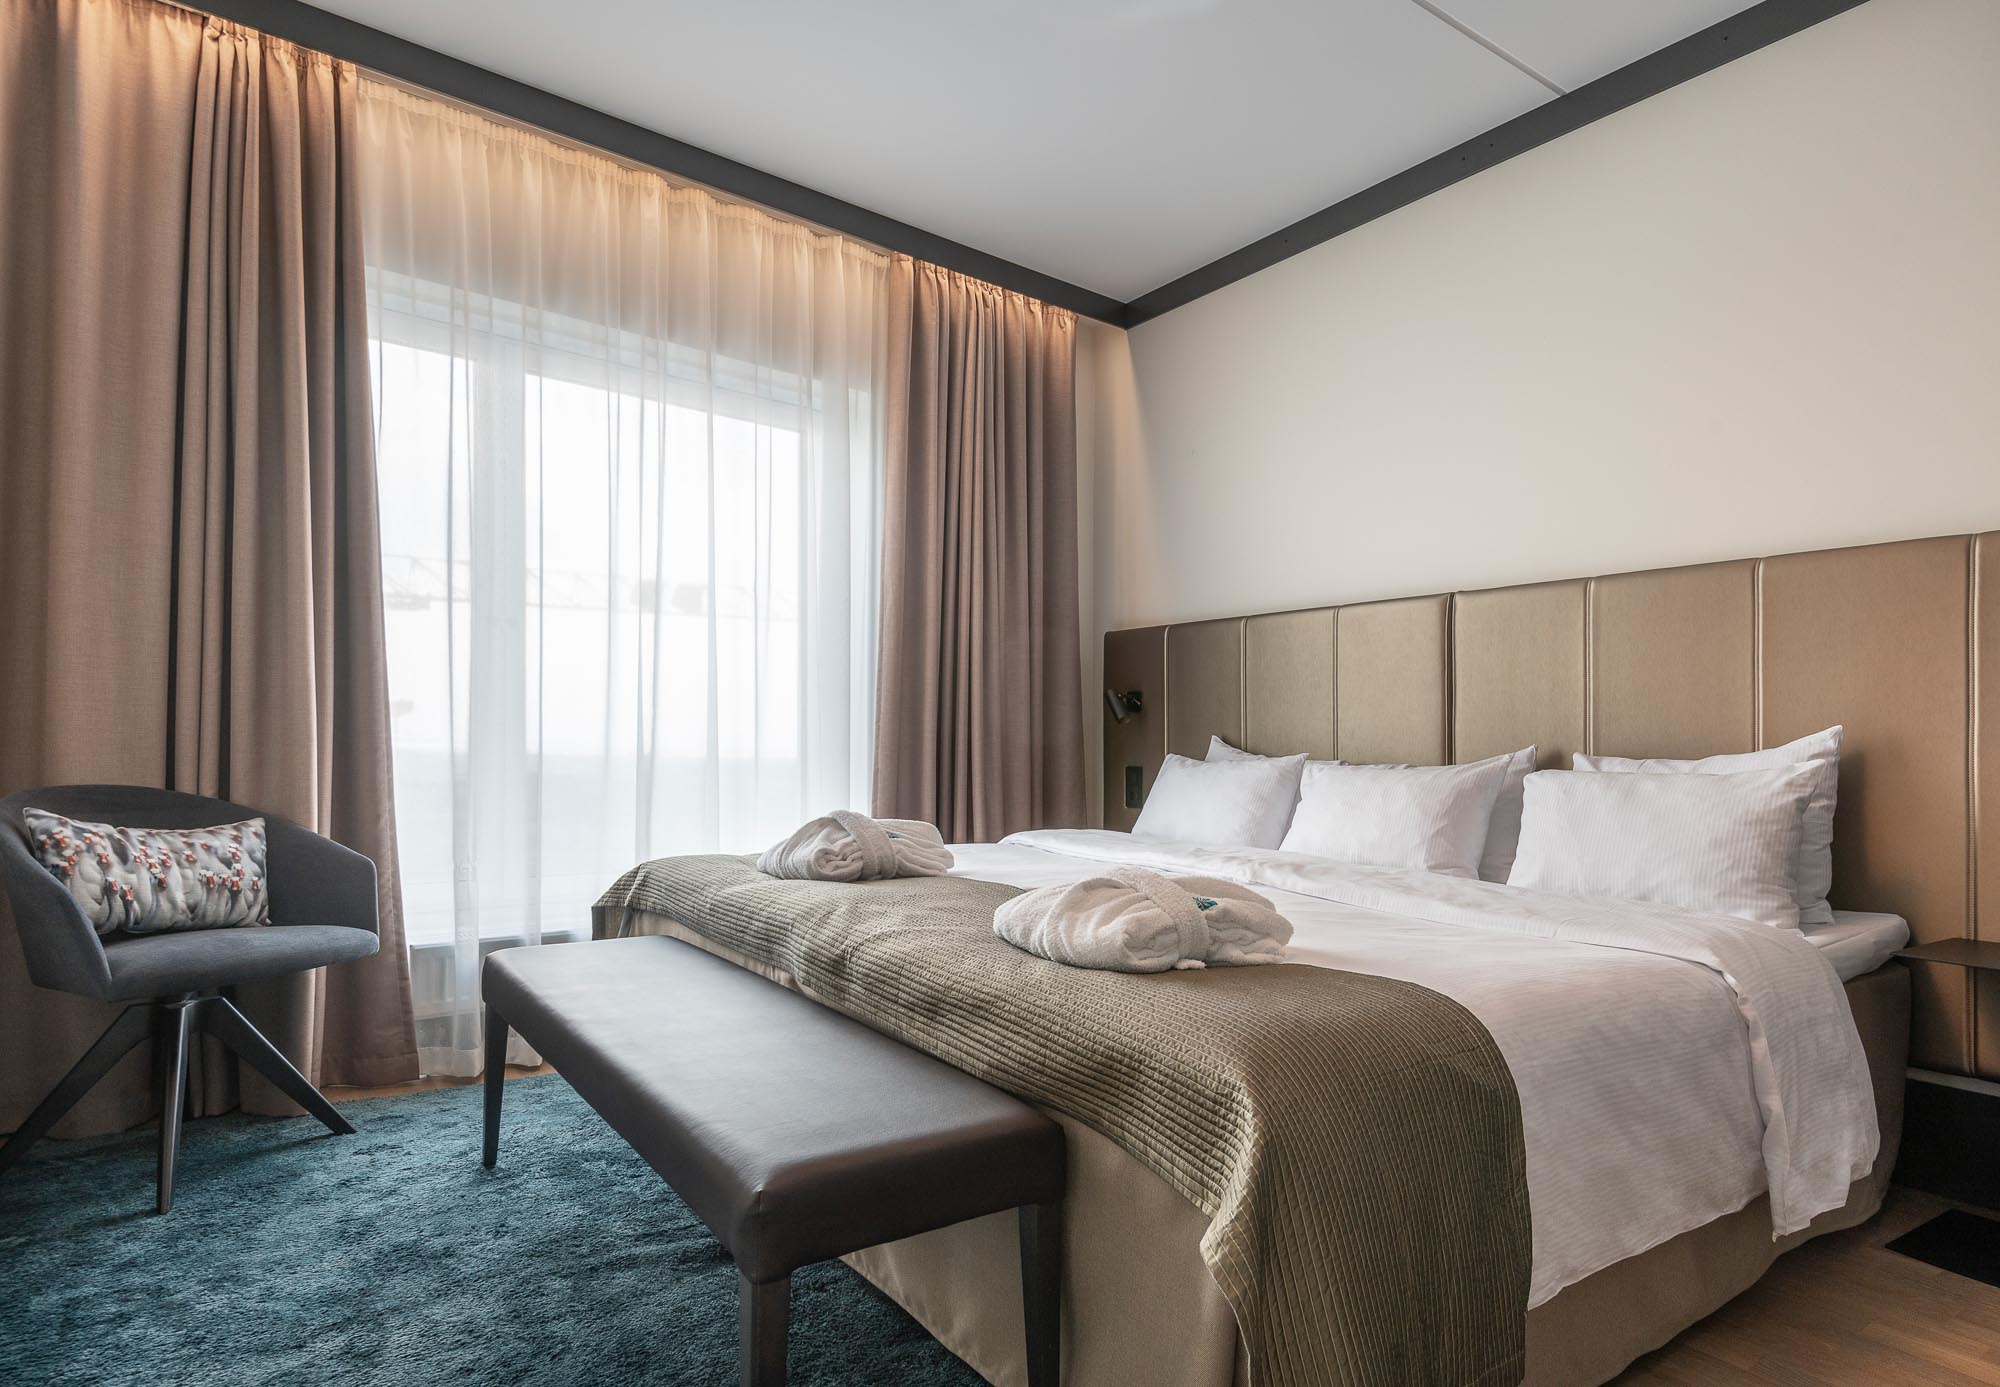 suite-double-bed-room-view-quality-hotel-view